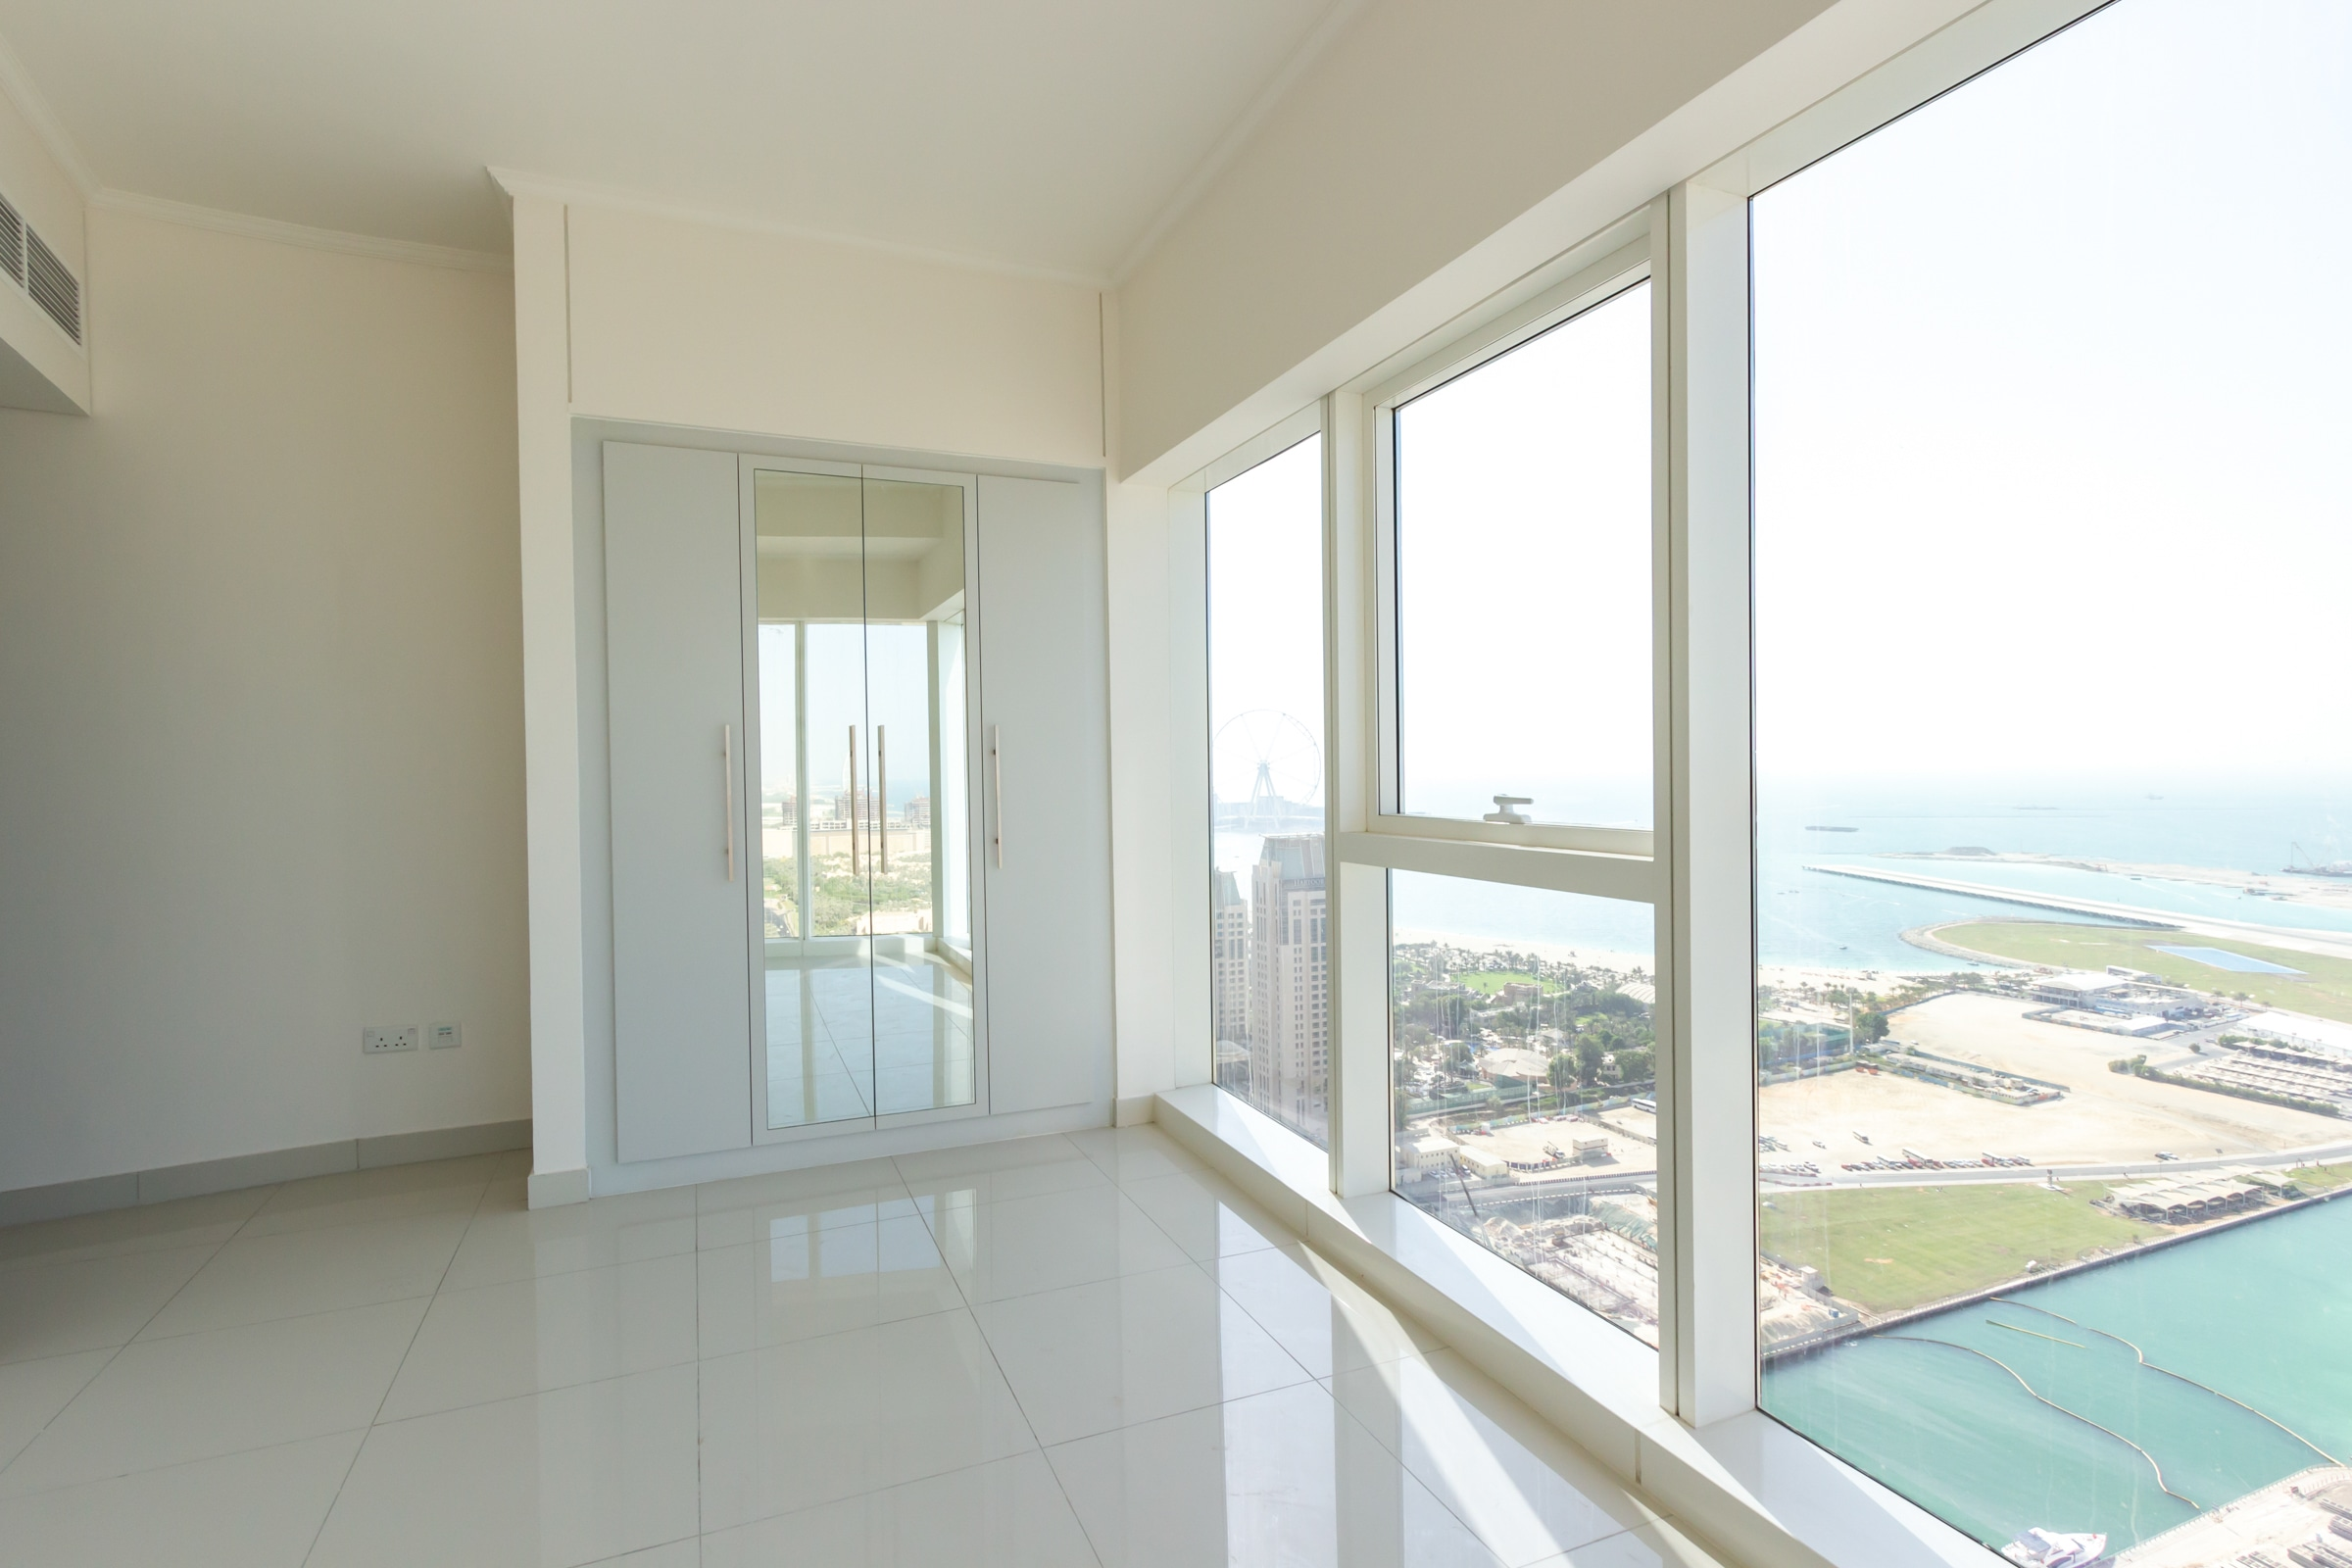 Best Layout I 2 Bedroom I Full Sea View